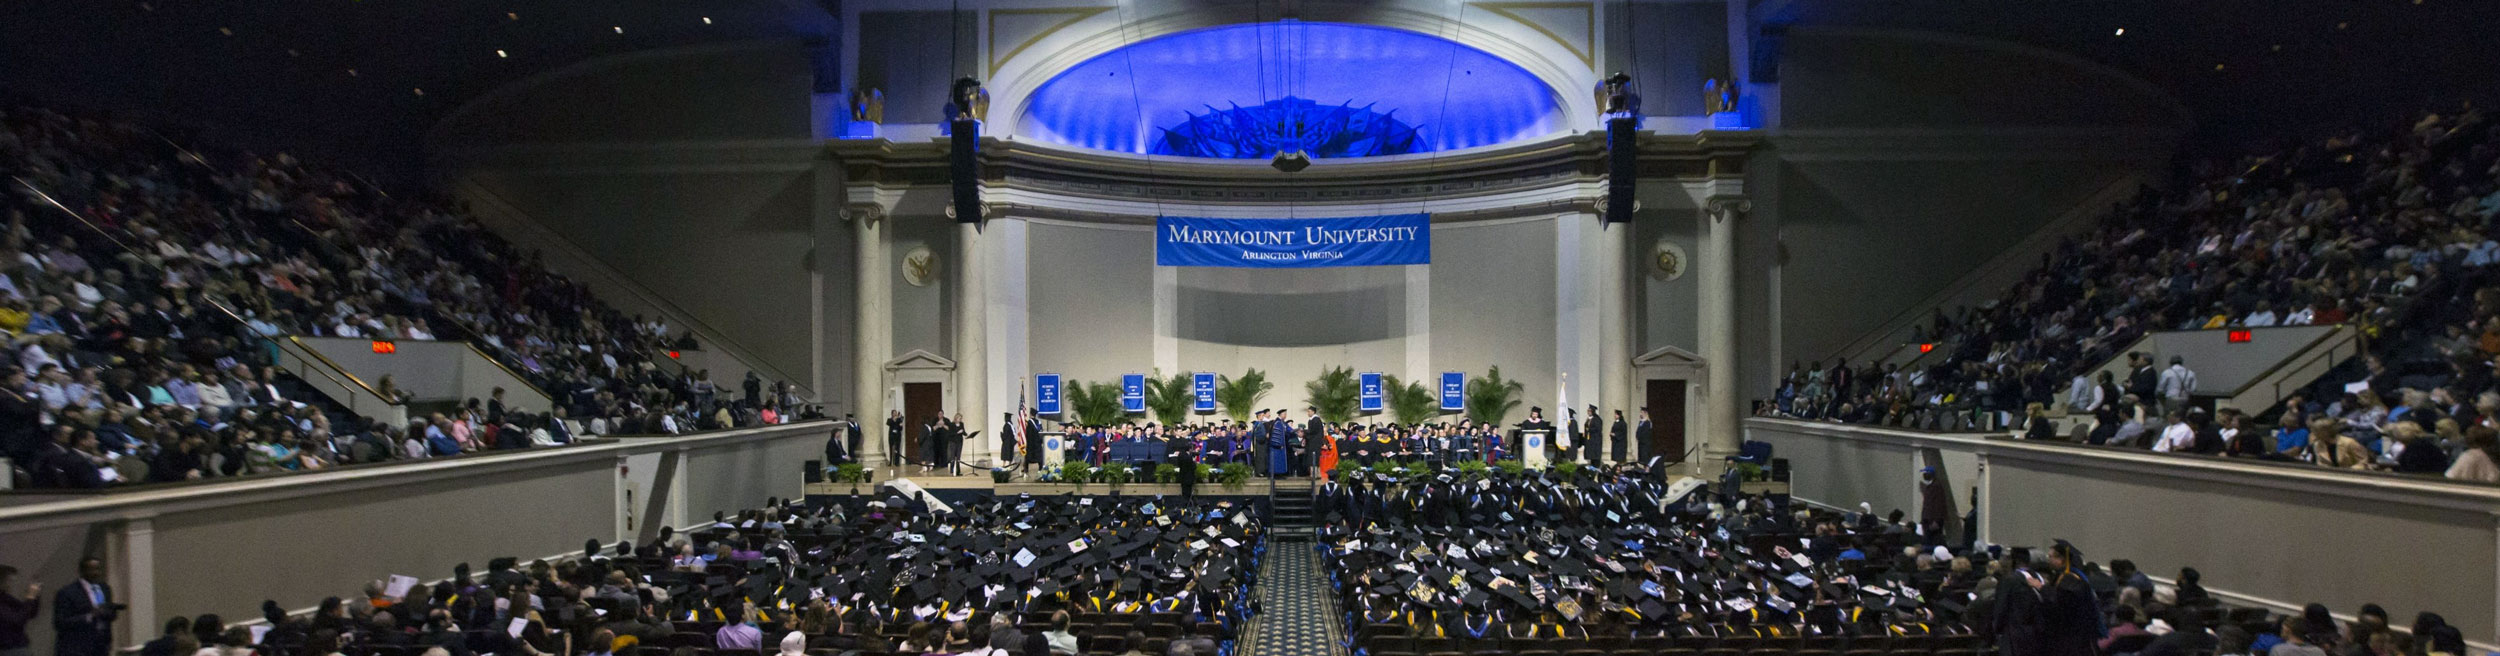 DAR Constitution Hall during 2018 Marymount University Commencement